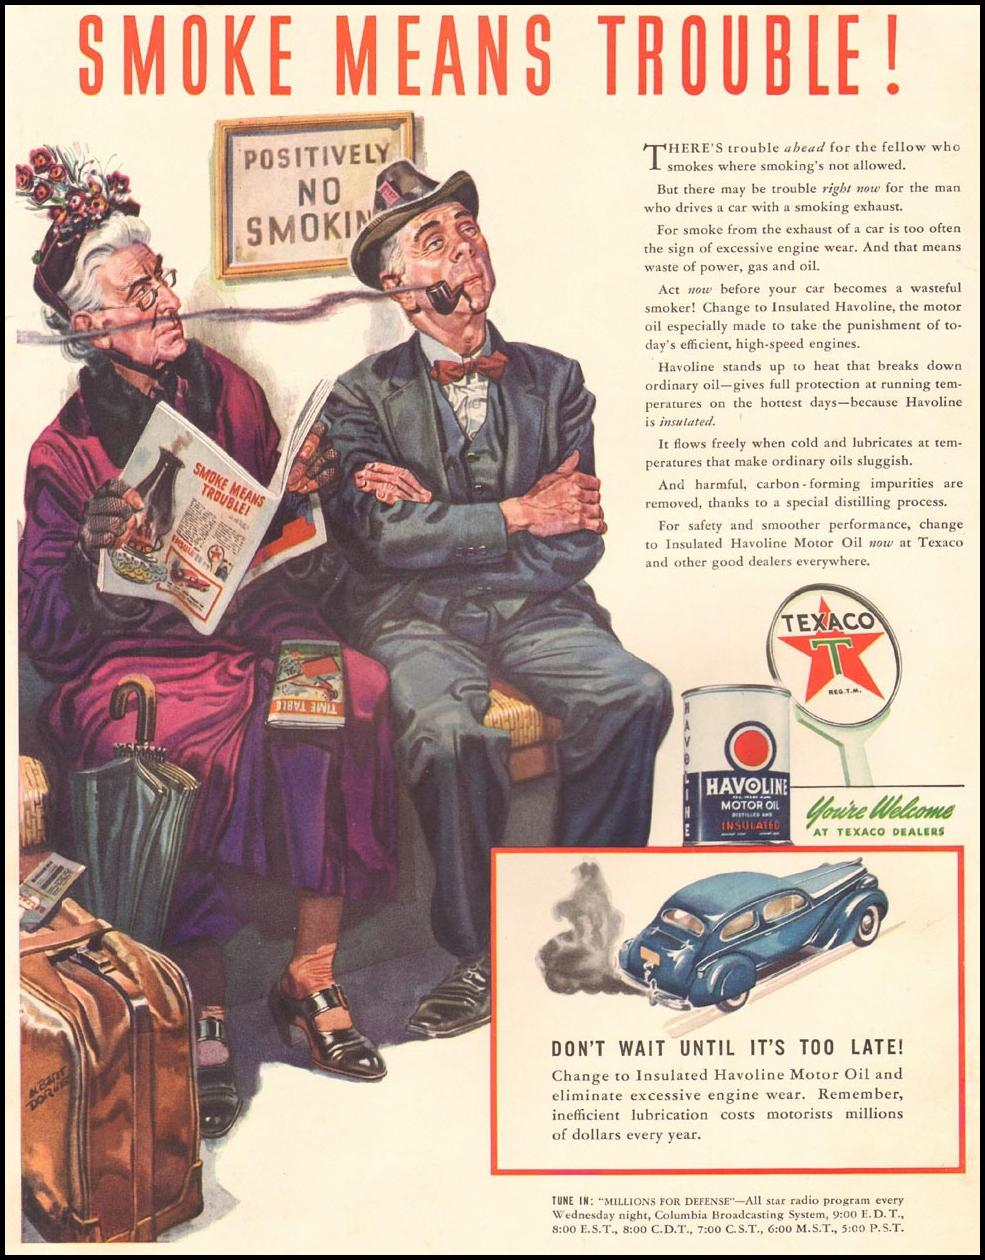 TEXACO HAVOLINE MOTOR OIL LIFE 08/04/1941 INSIDE FRONT